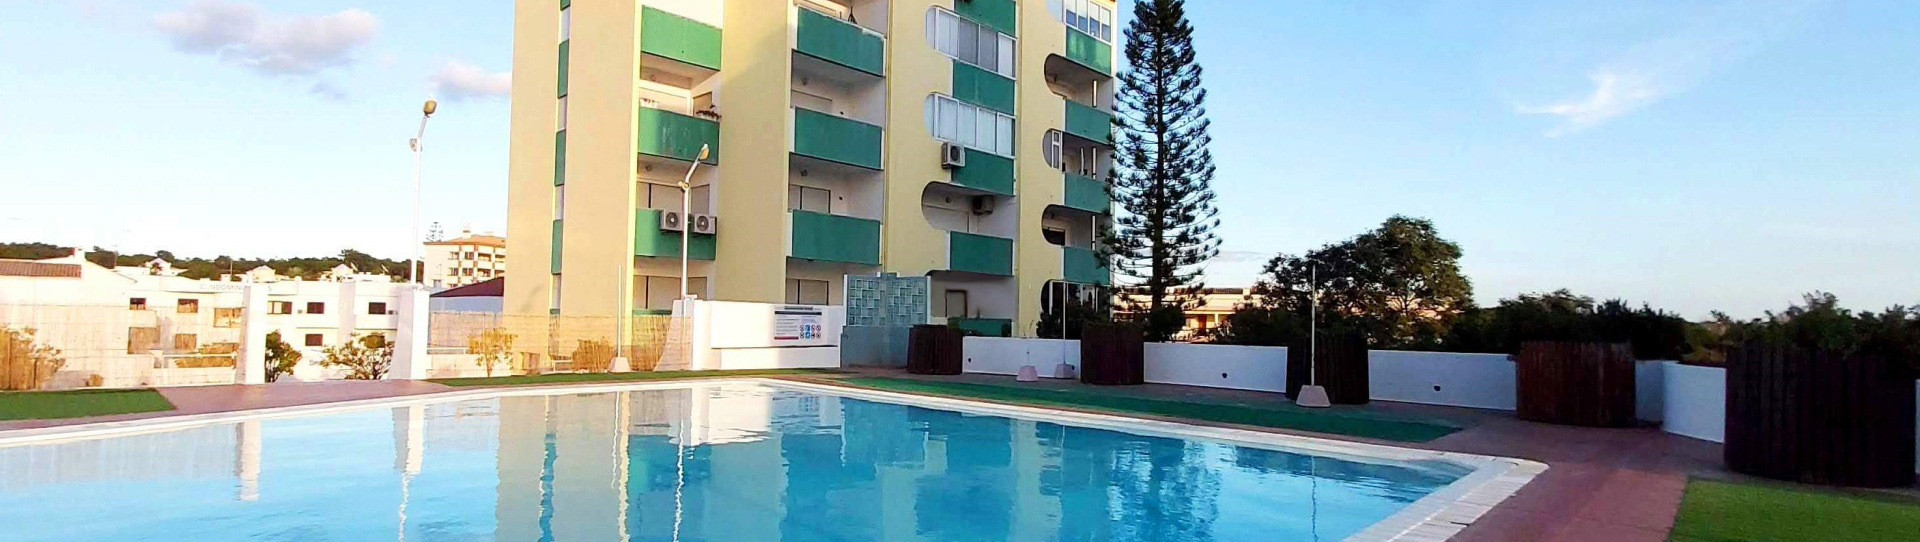 Amendoeiras Apartments Vilamoura - Photo 1